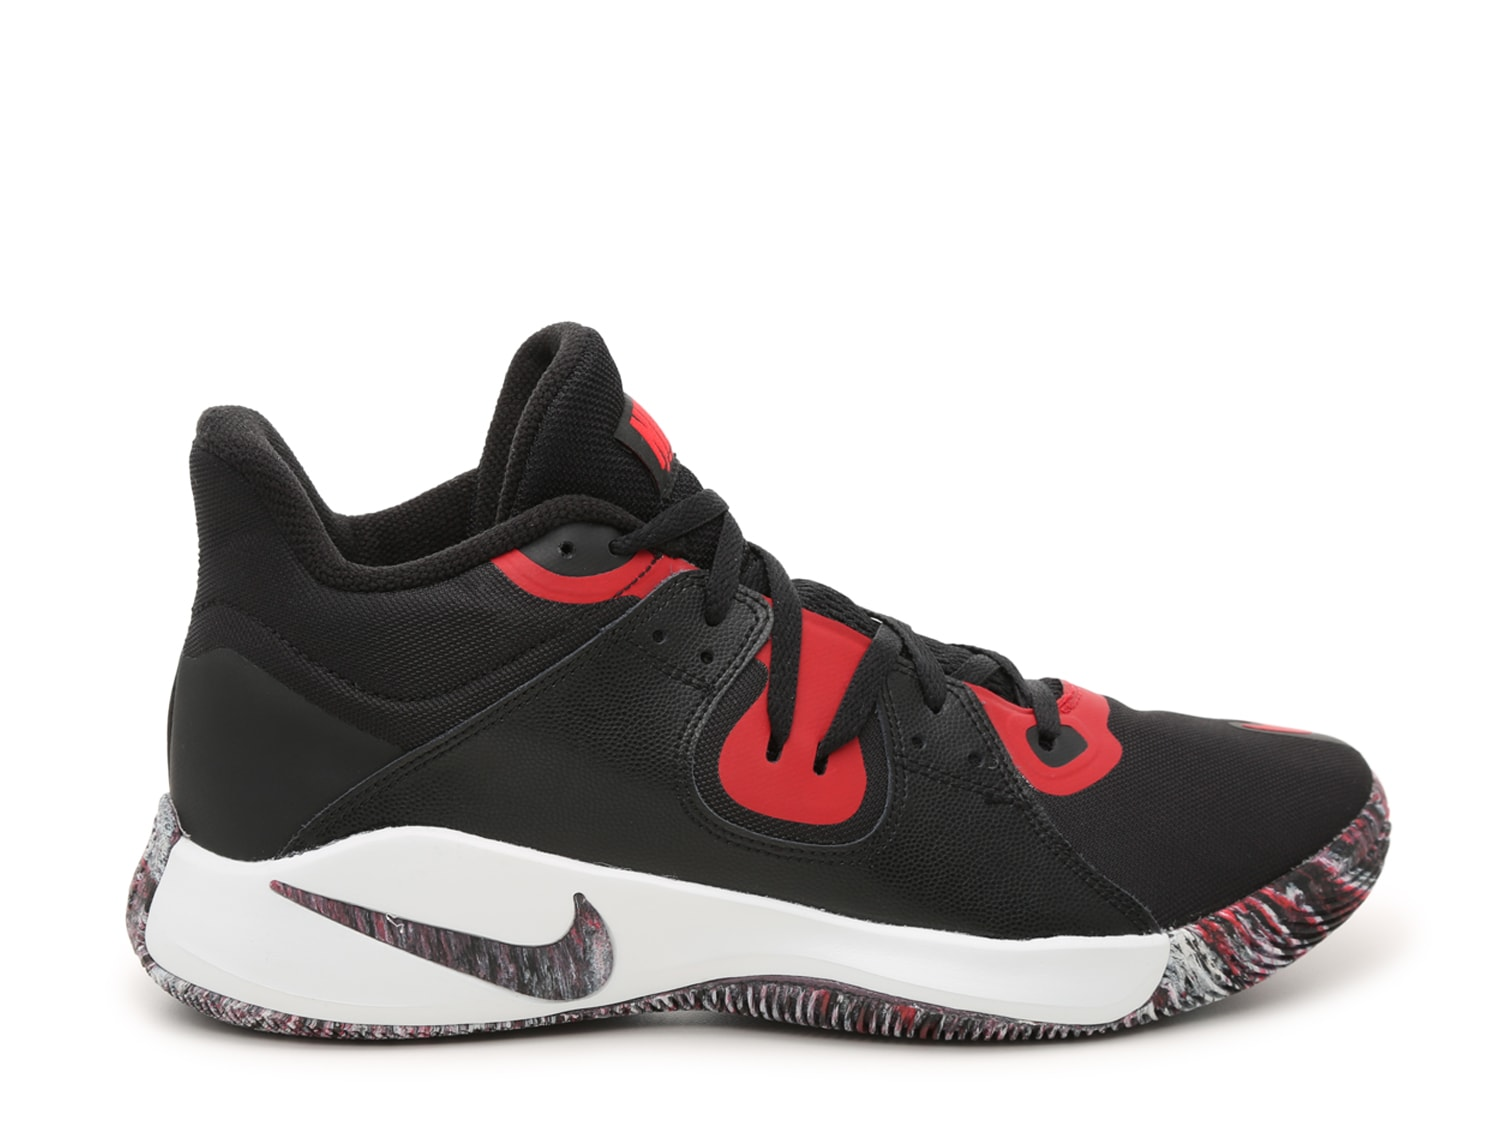 Nike Fly By Mid Basketball Shoe - Men's Men's Shoes | DSW